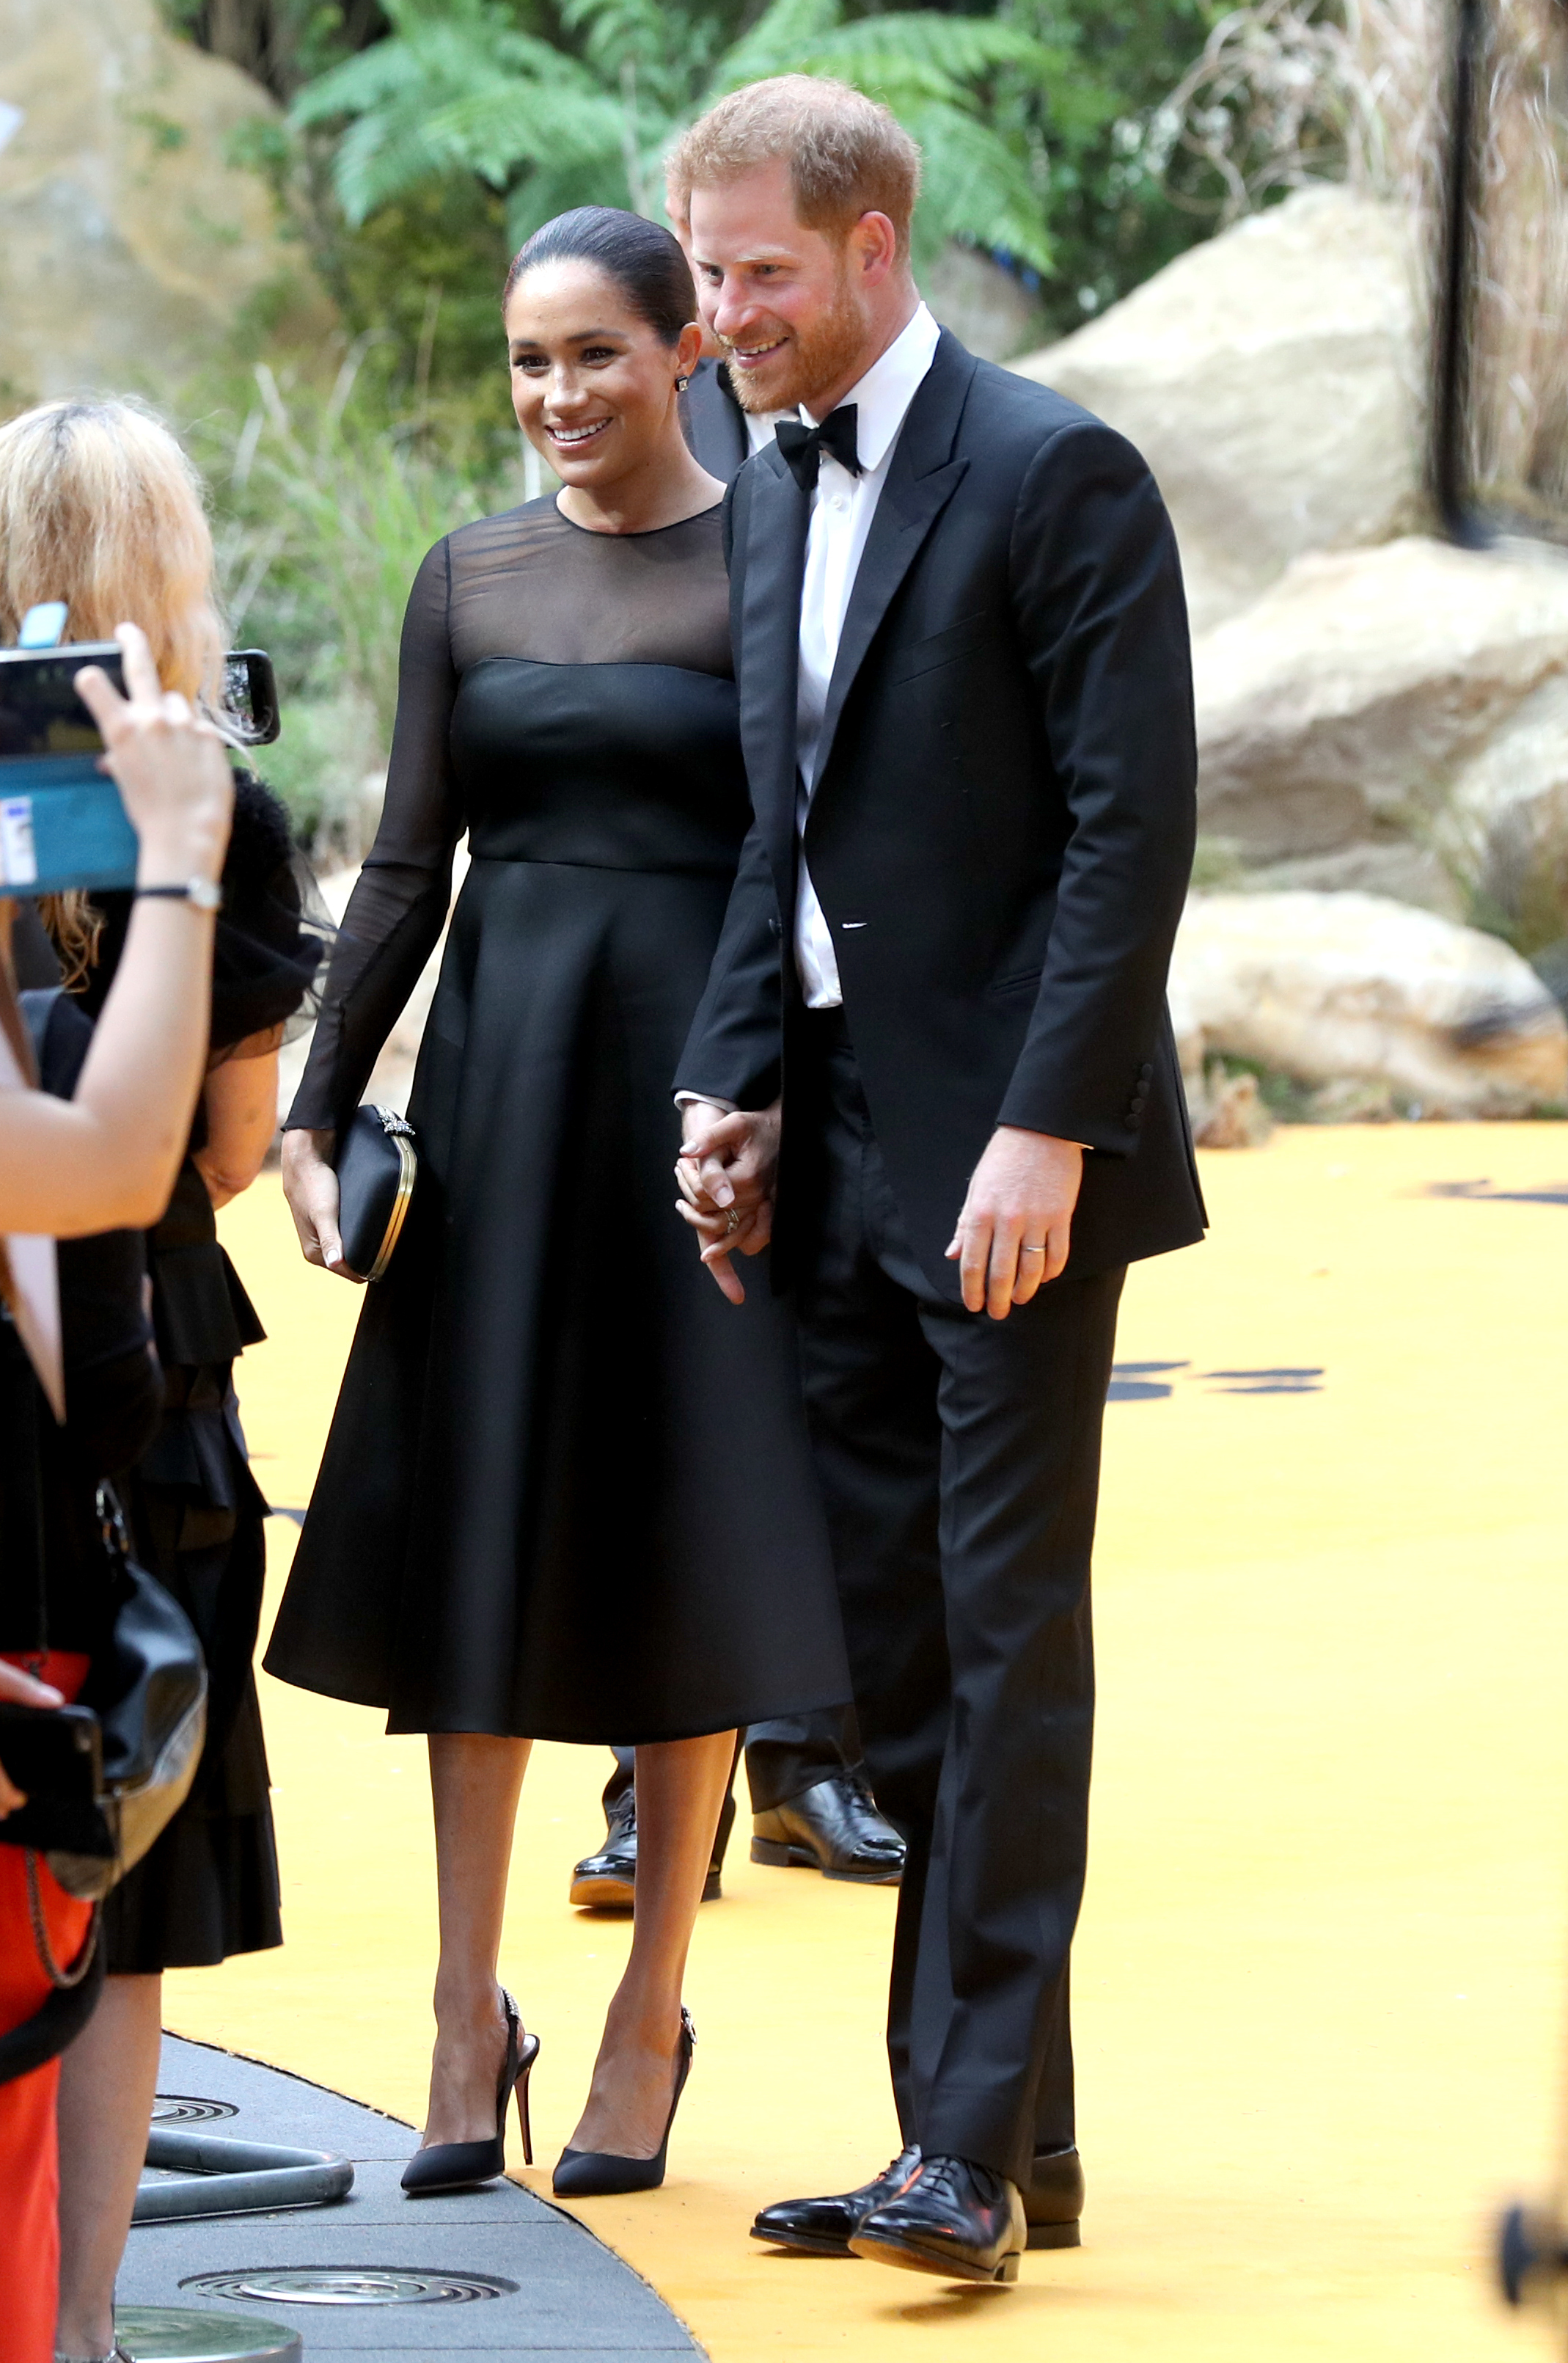 The Duke and Duchess of Sussex attend the European Premiere of Disney's The Lion King at the Odeon Leicester Square, London.